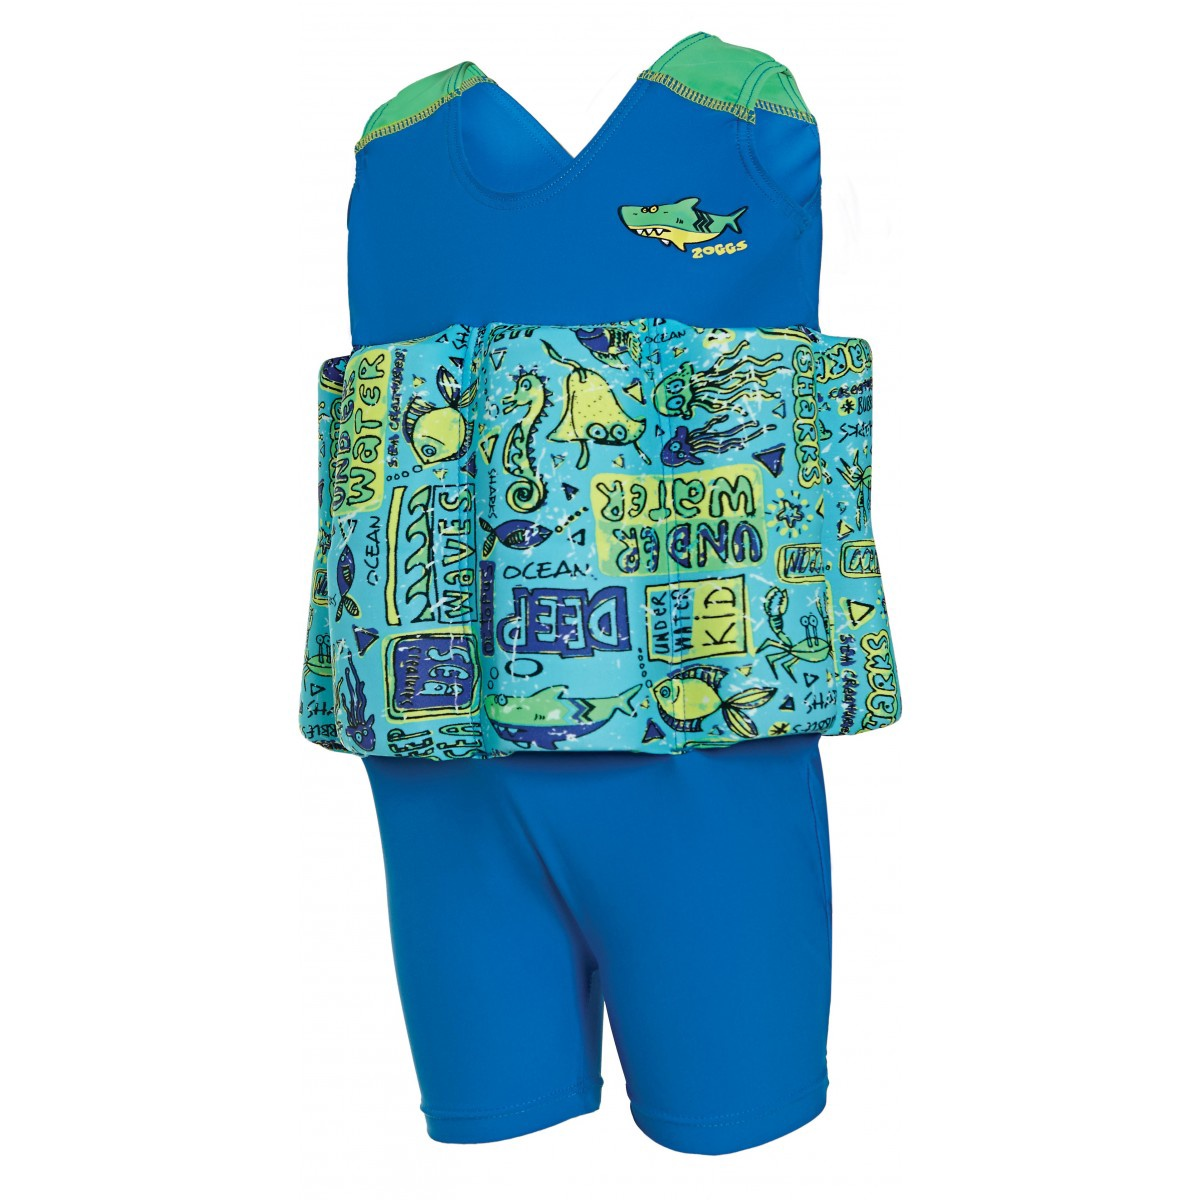 LEARN TO SWIM FLOATSUIT BLUE 1-2 YRS